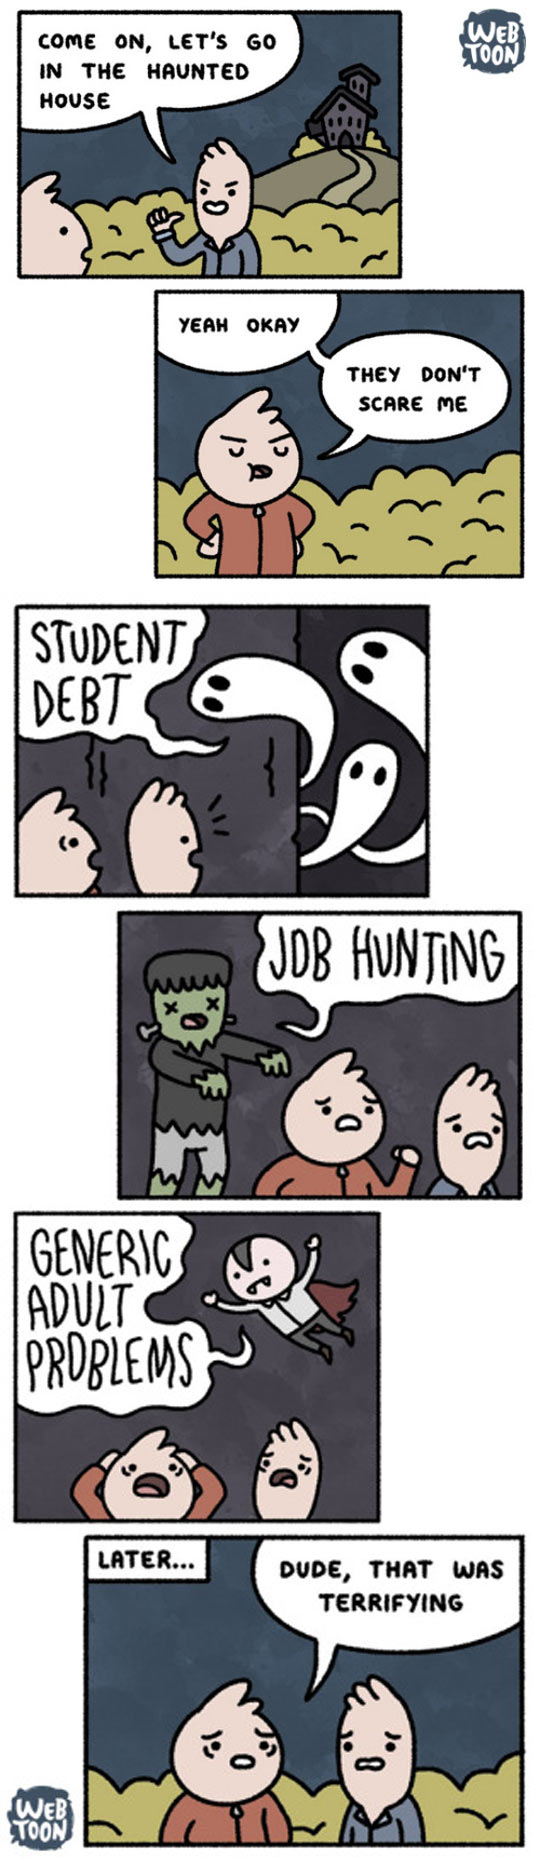 funny-friends-haunted-house-comic